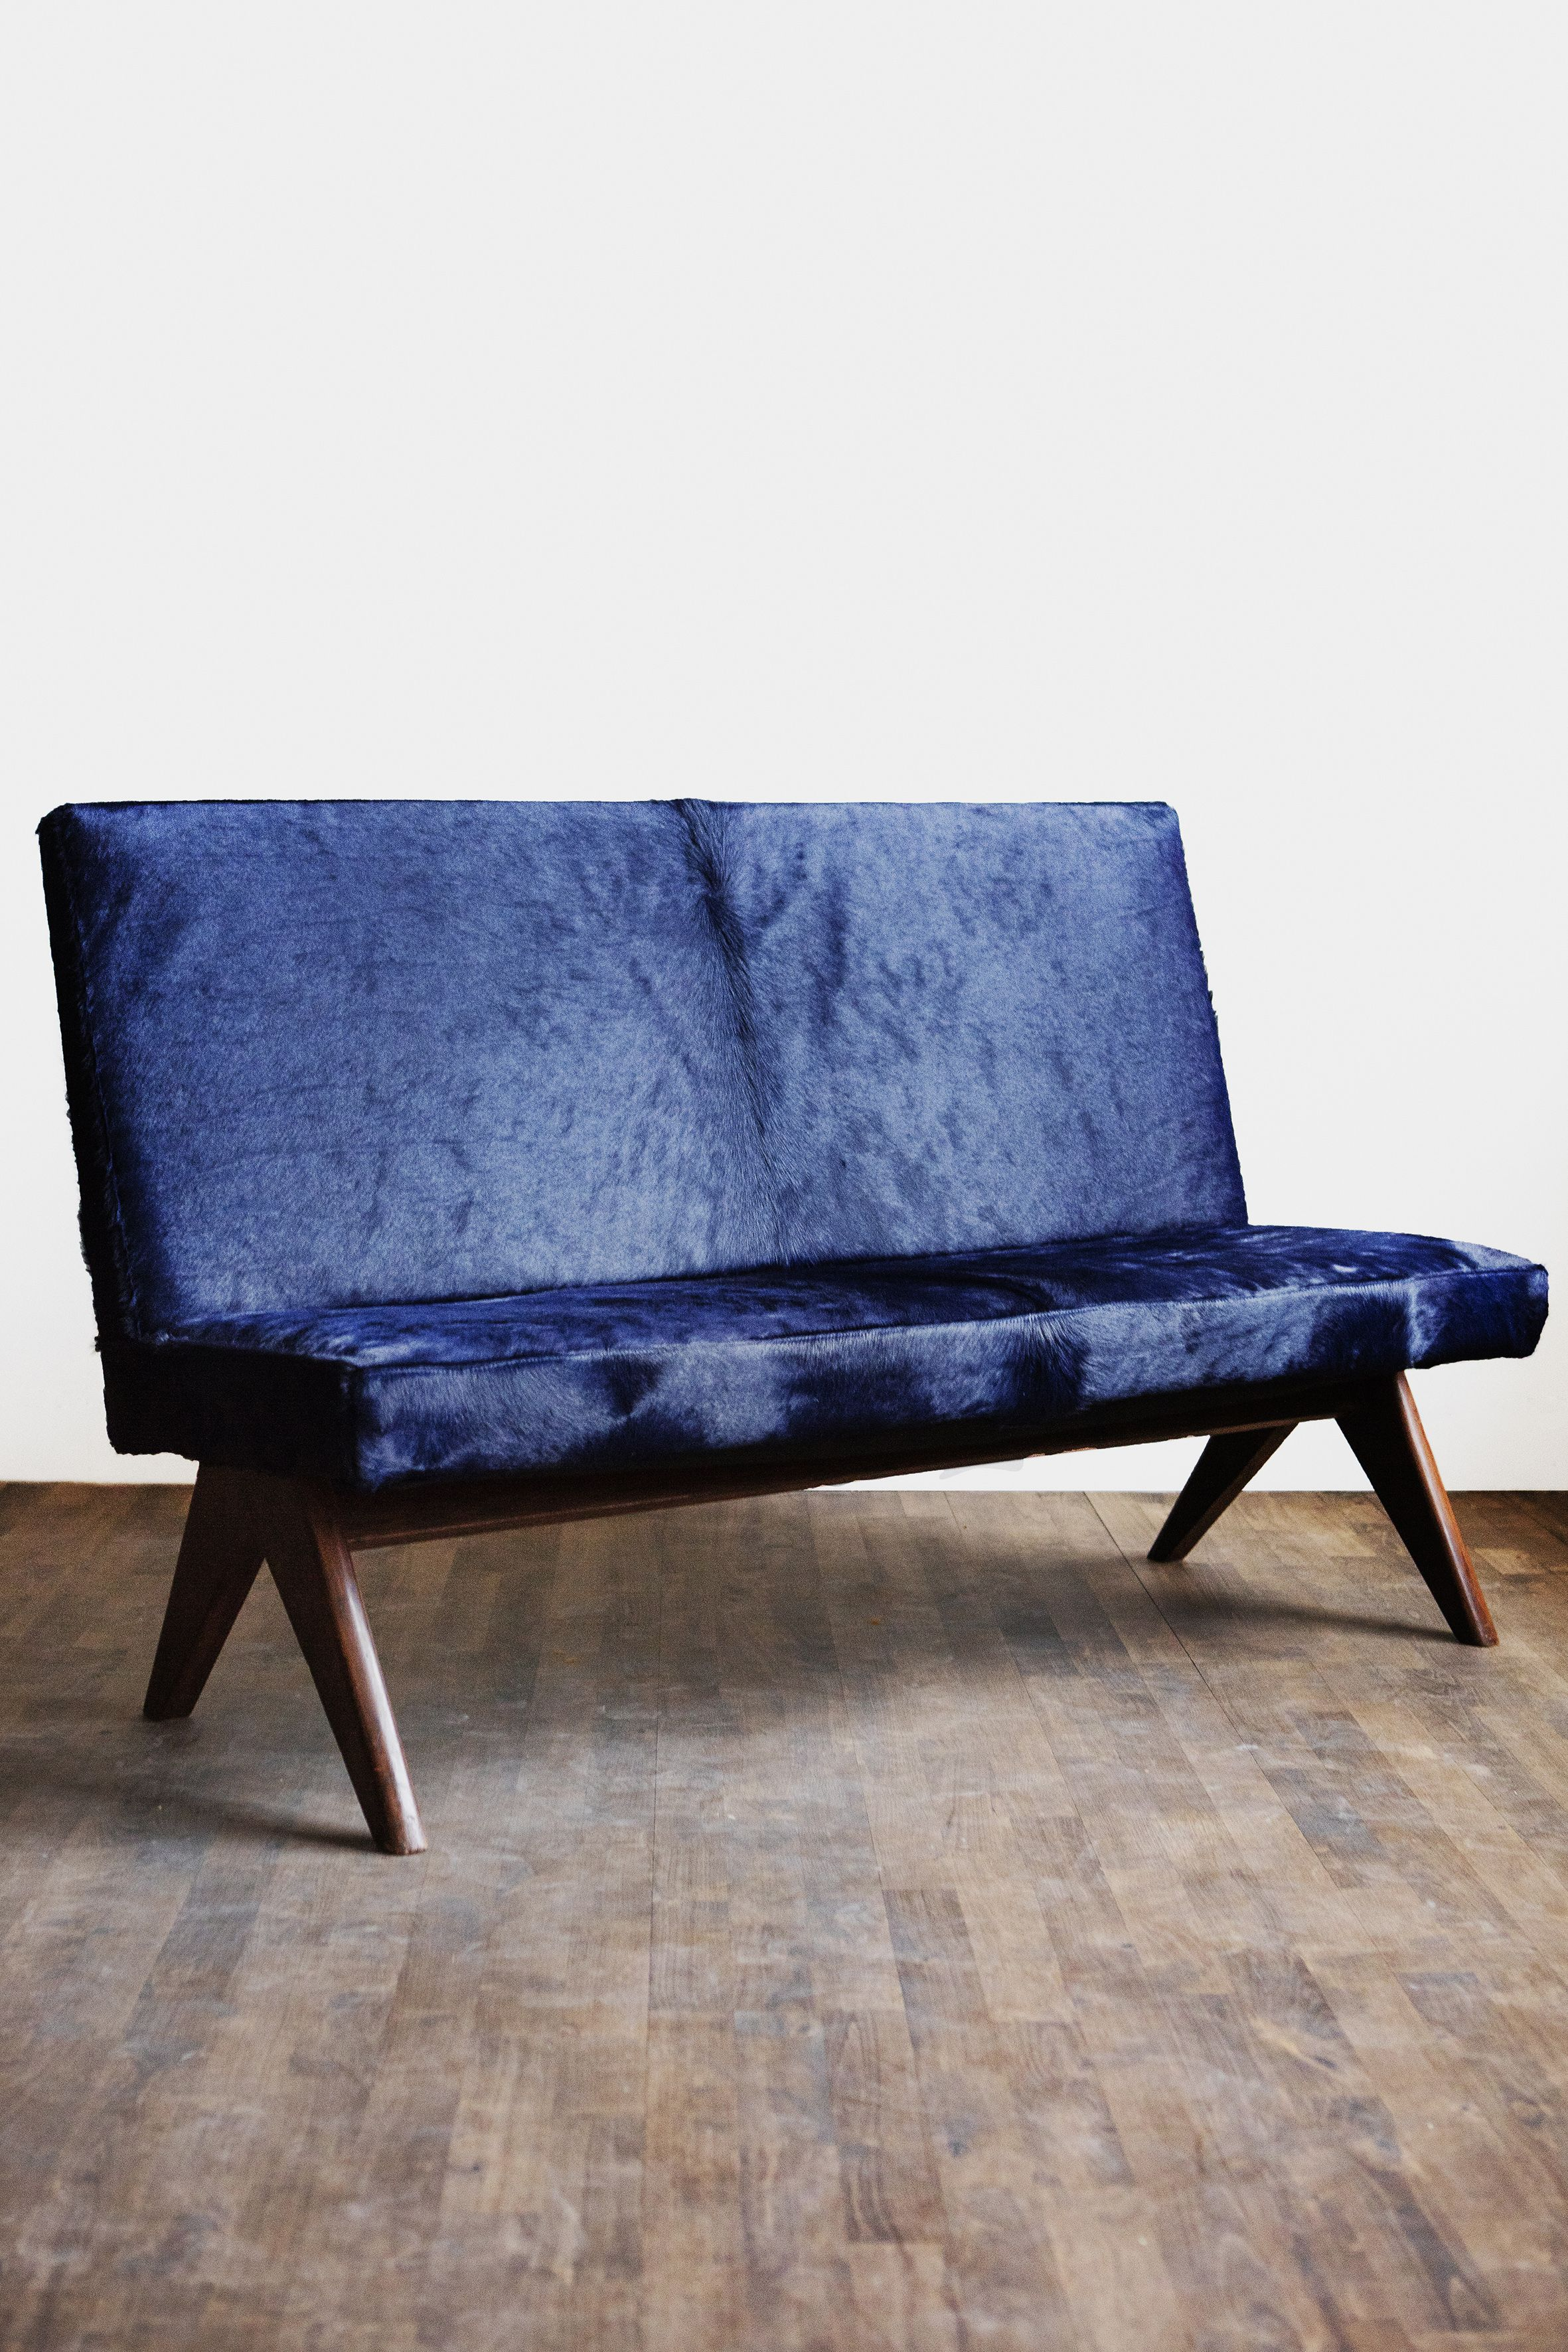 Image of Public Bench in Midnight Blue by Pierre Jeanneret